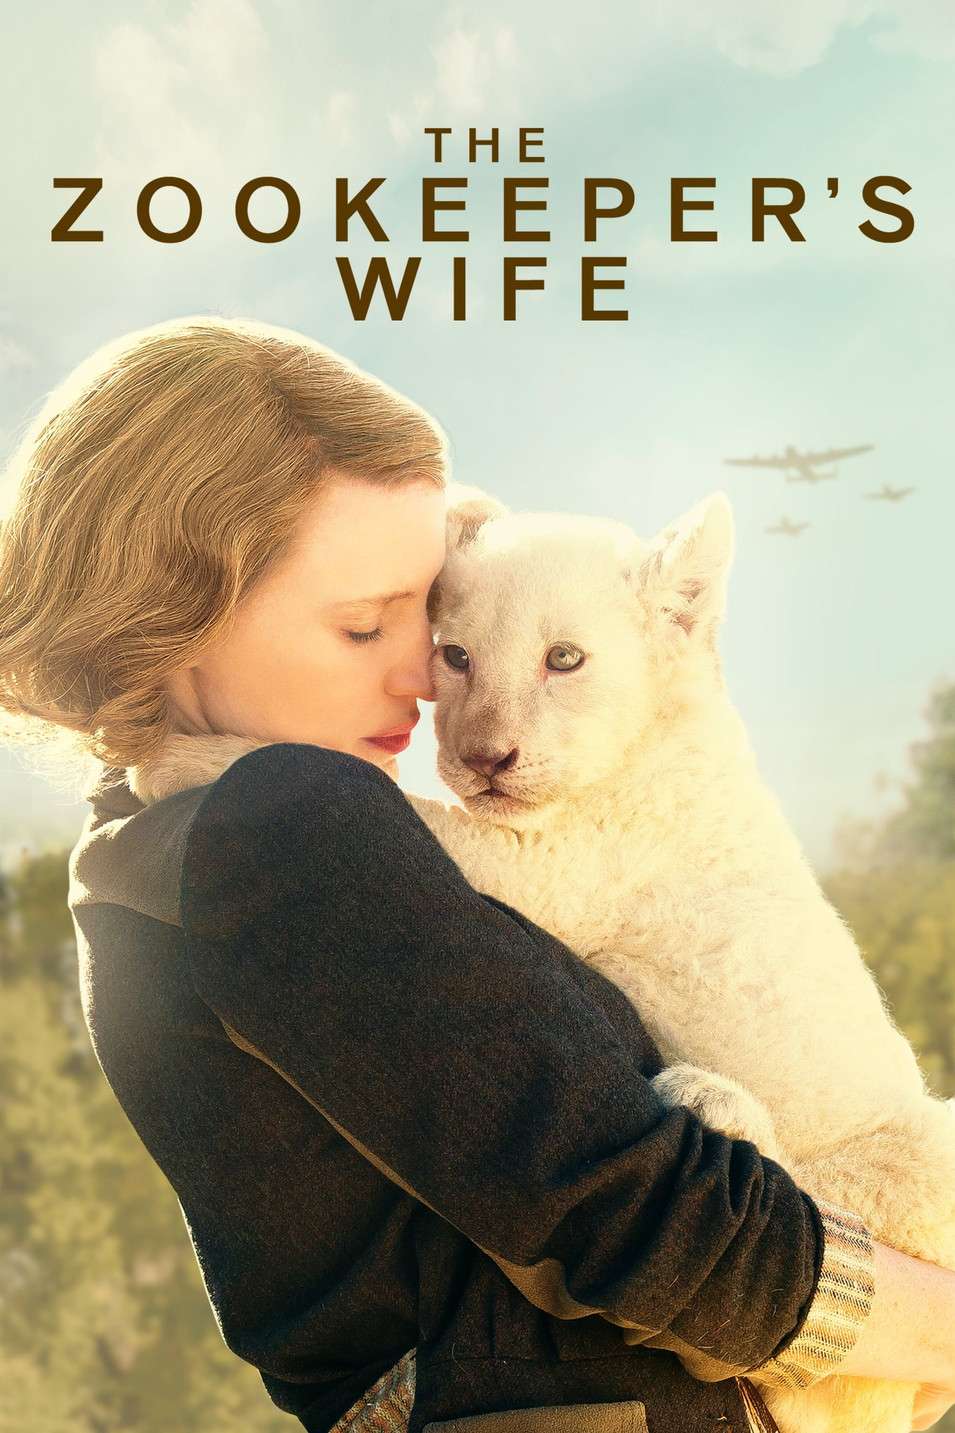 'The Zookeeper's Wife' | Czech Anglo Productions